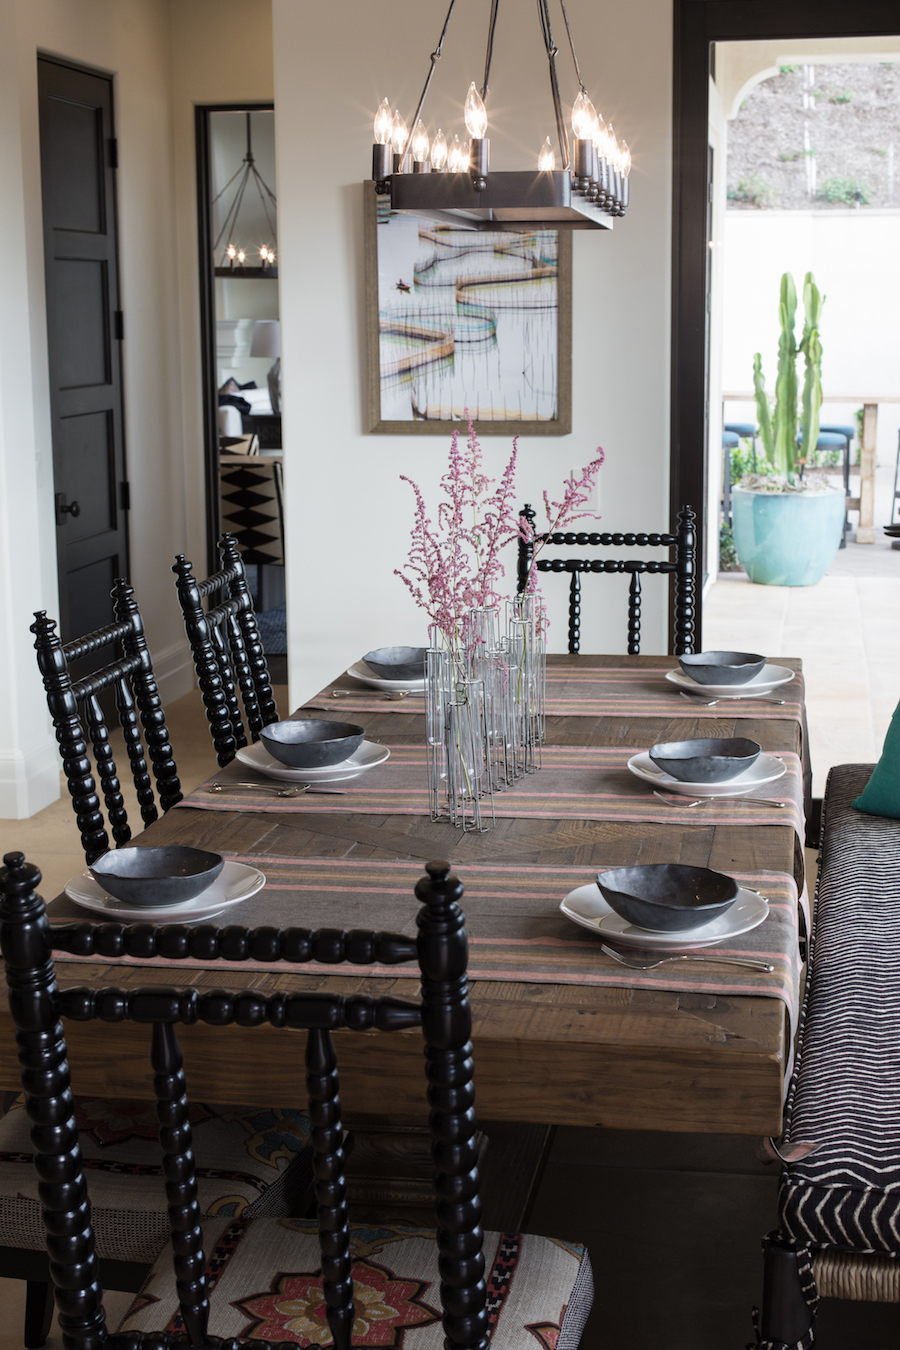 Hilltop Hacienda is an interior design project by Denise Morrison Interiors featuring a breakfast nook with tablewear and accessories.